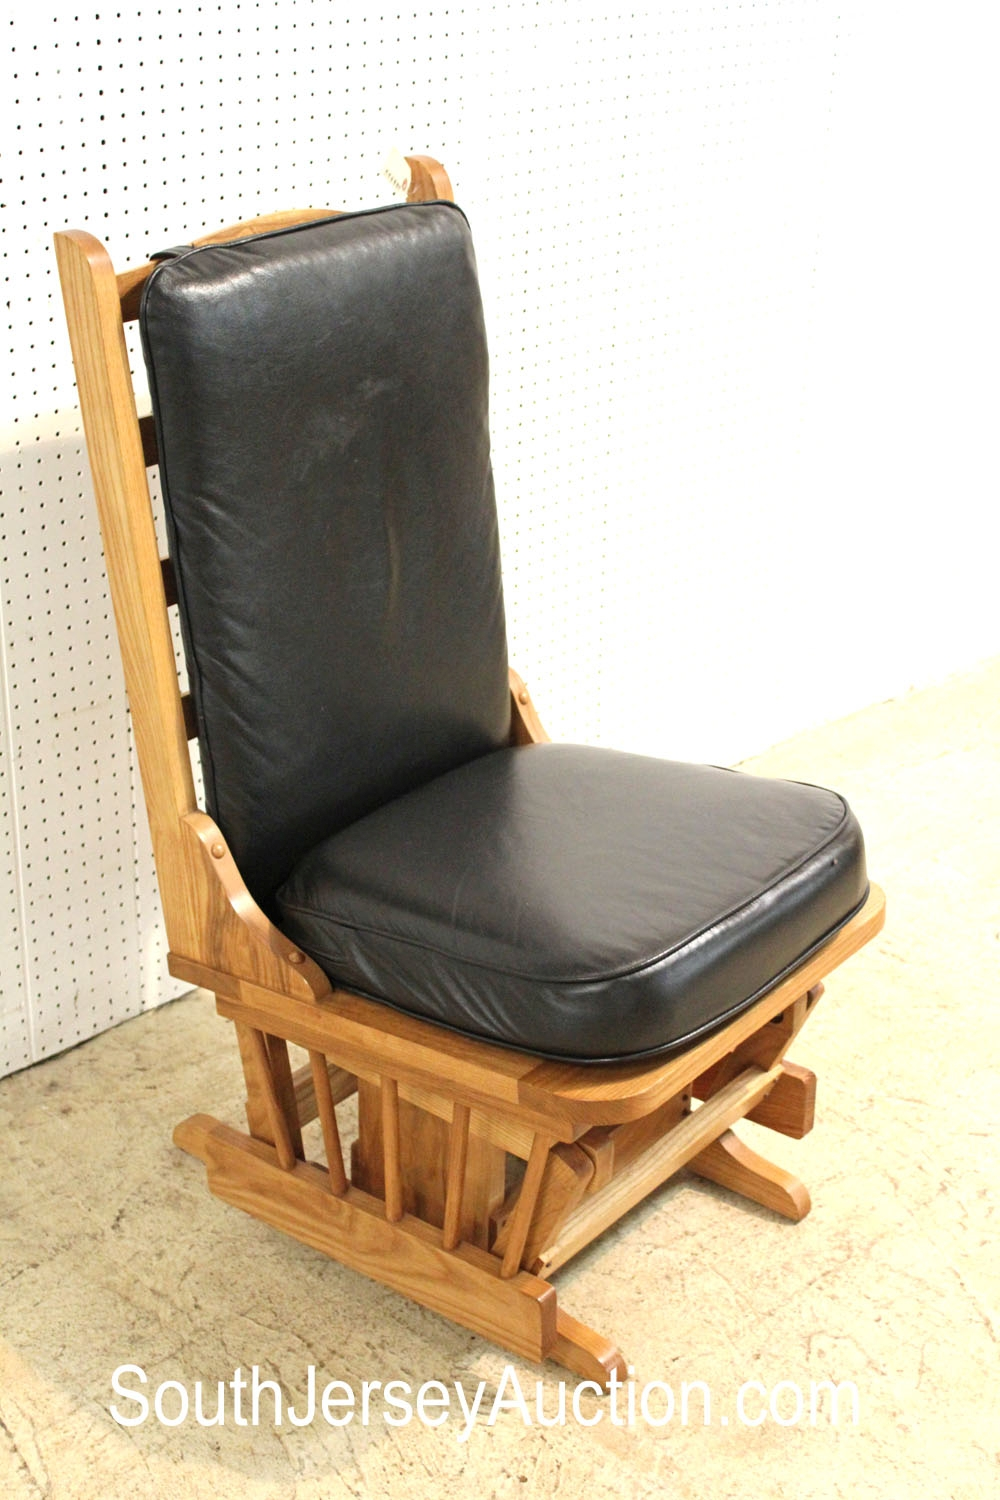 Pick-N-Glider Guitar Players Chair, with Leather Black Padding, made in North Carolina